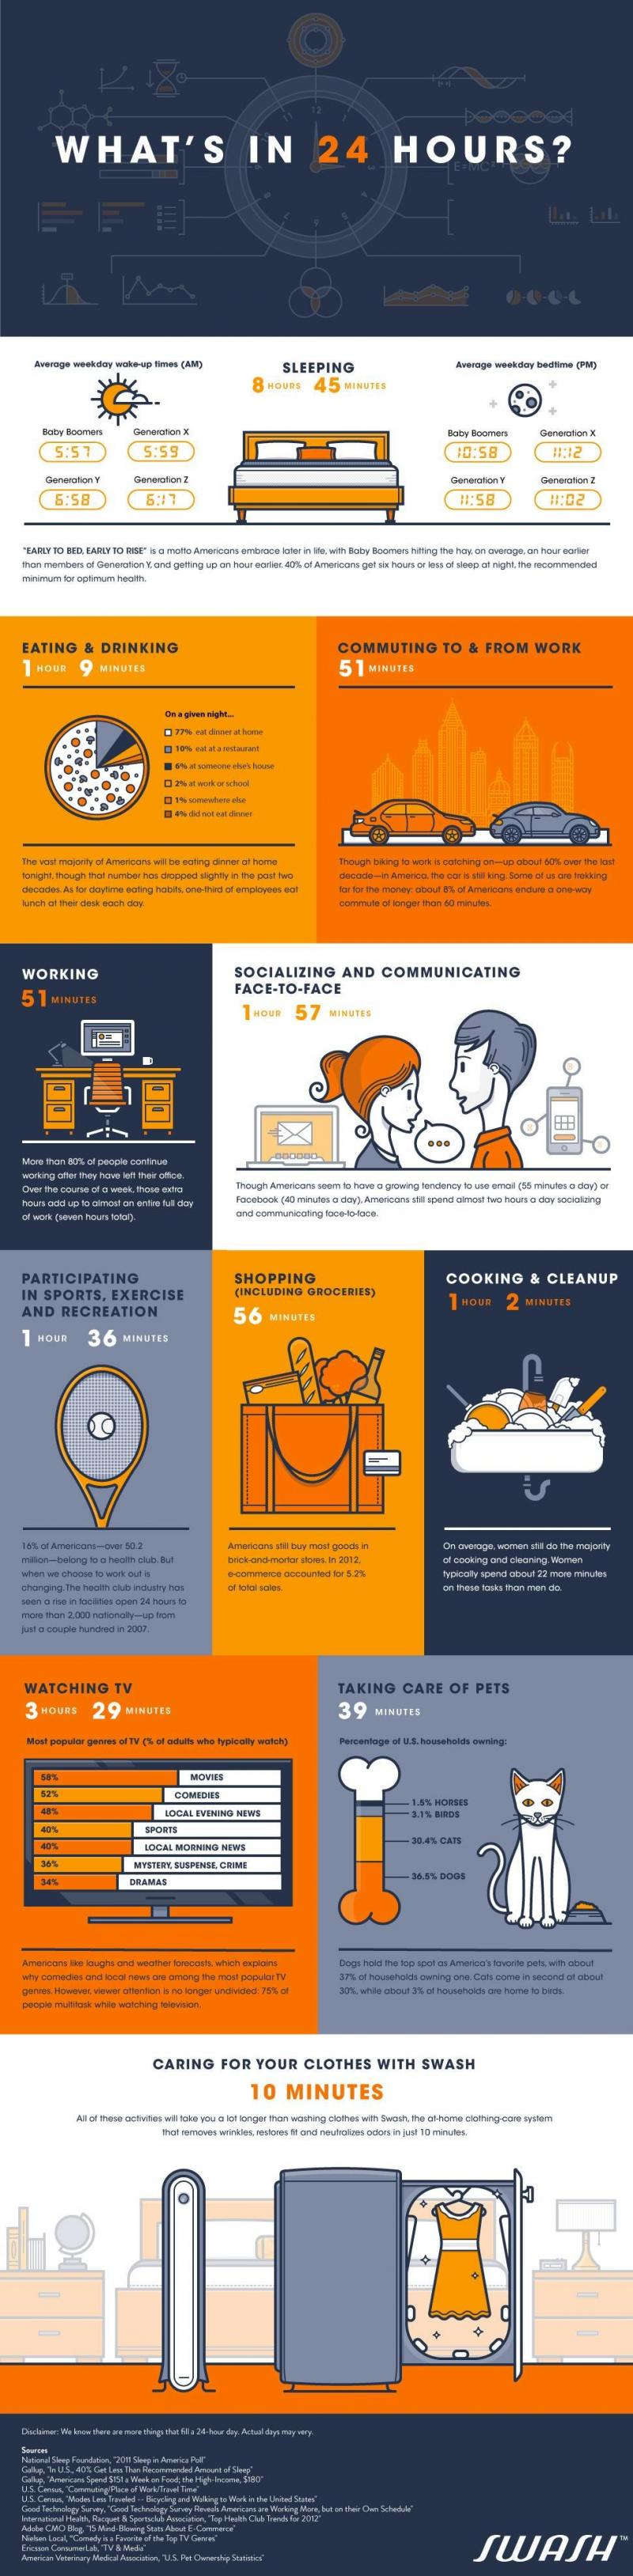 What is in 24 hours? #Infographic